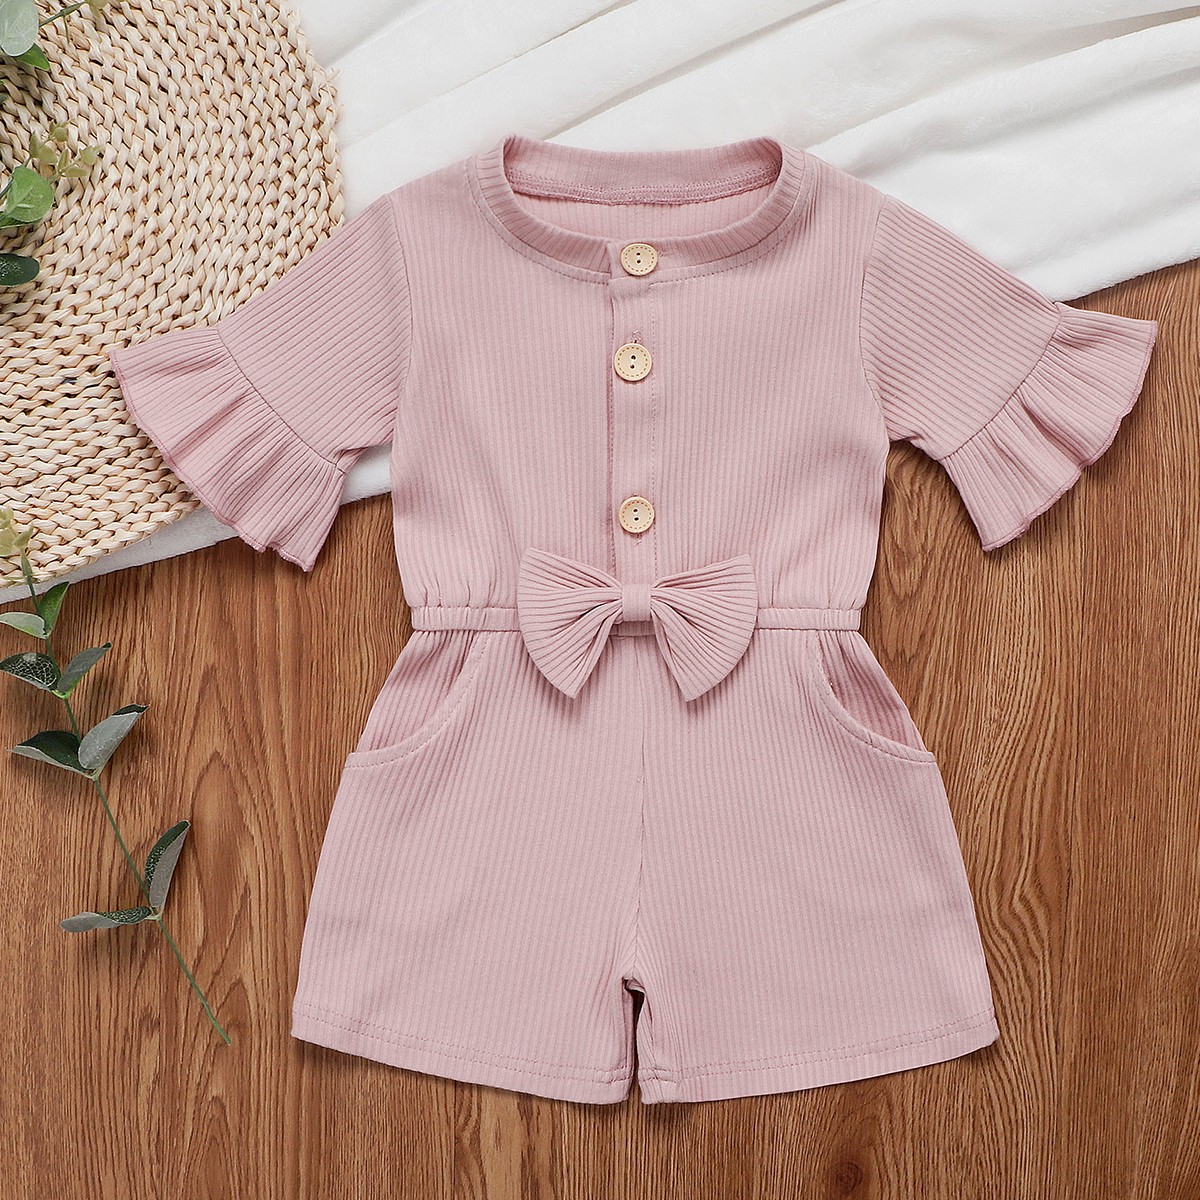 Pudcoco Toddler Baby Girl Clothes Solid Color Flare Short Sleeve Button Bowknot Romper Jumpsuit One-Piece Outfit Clothes